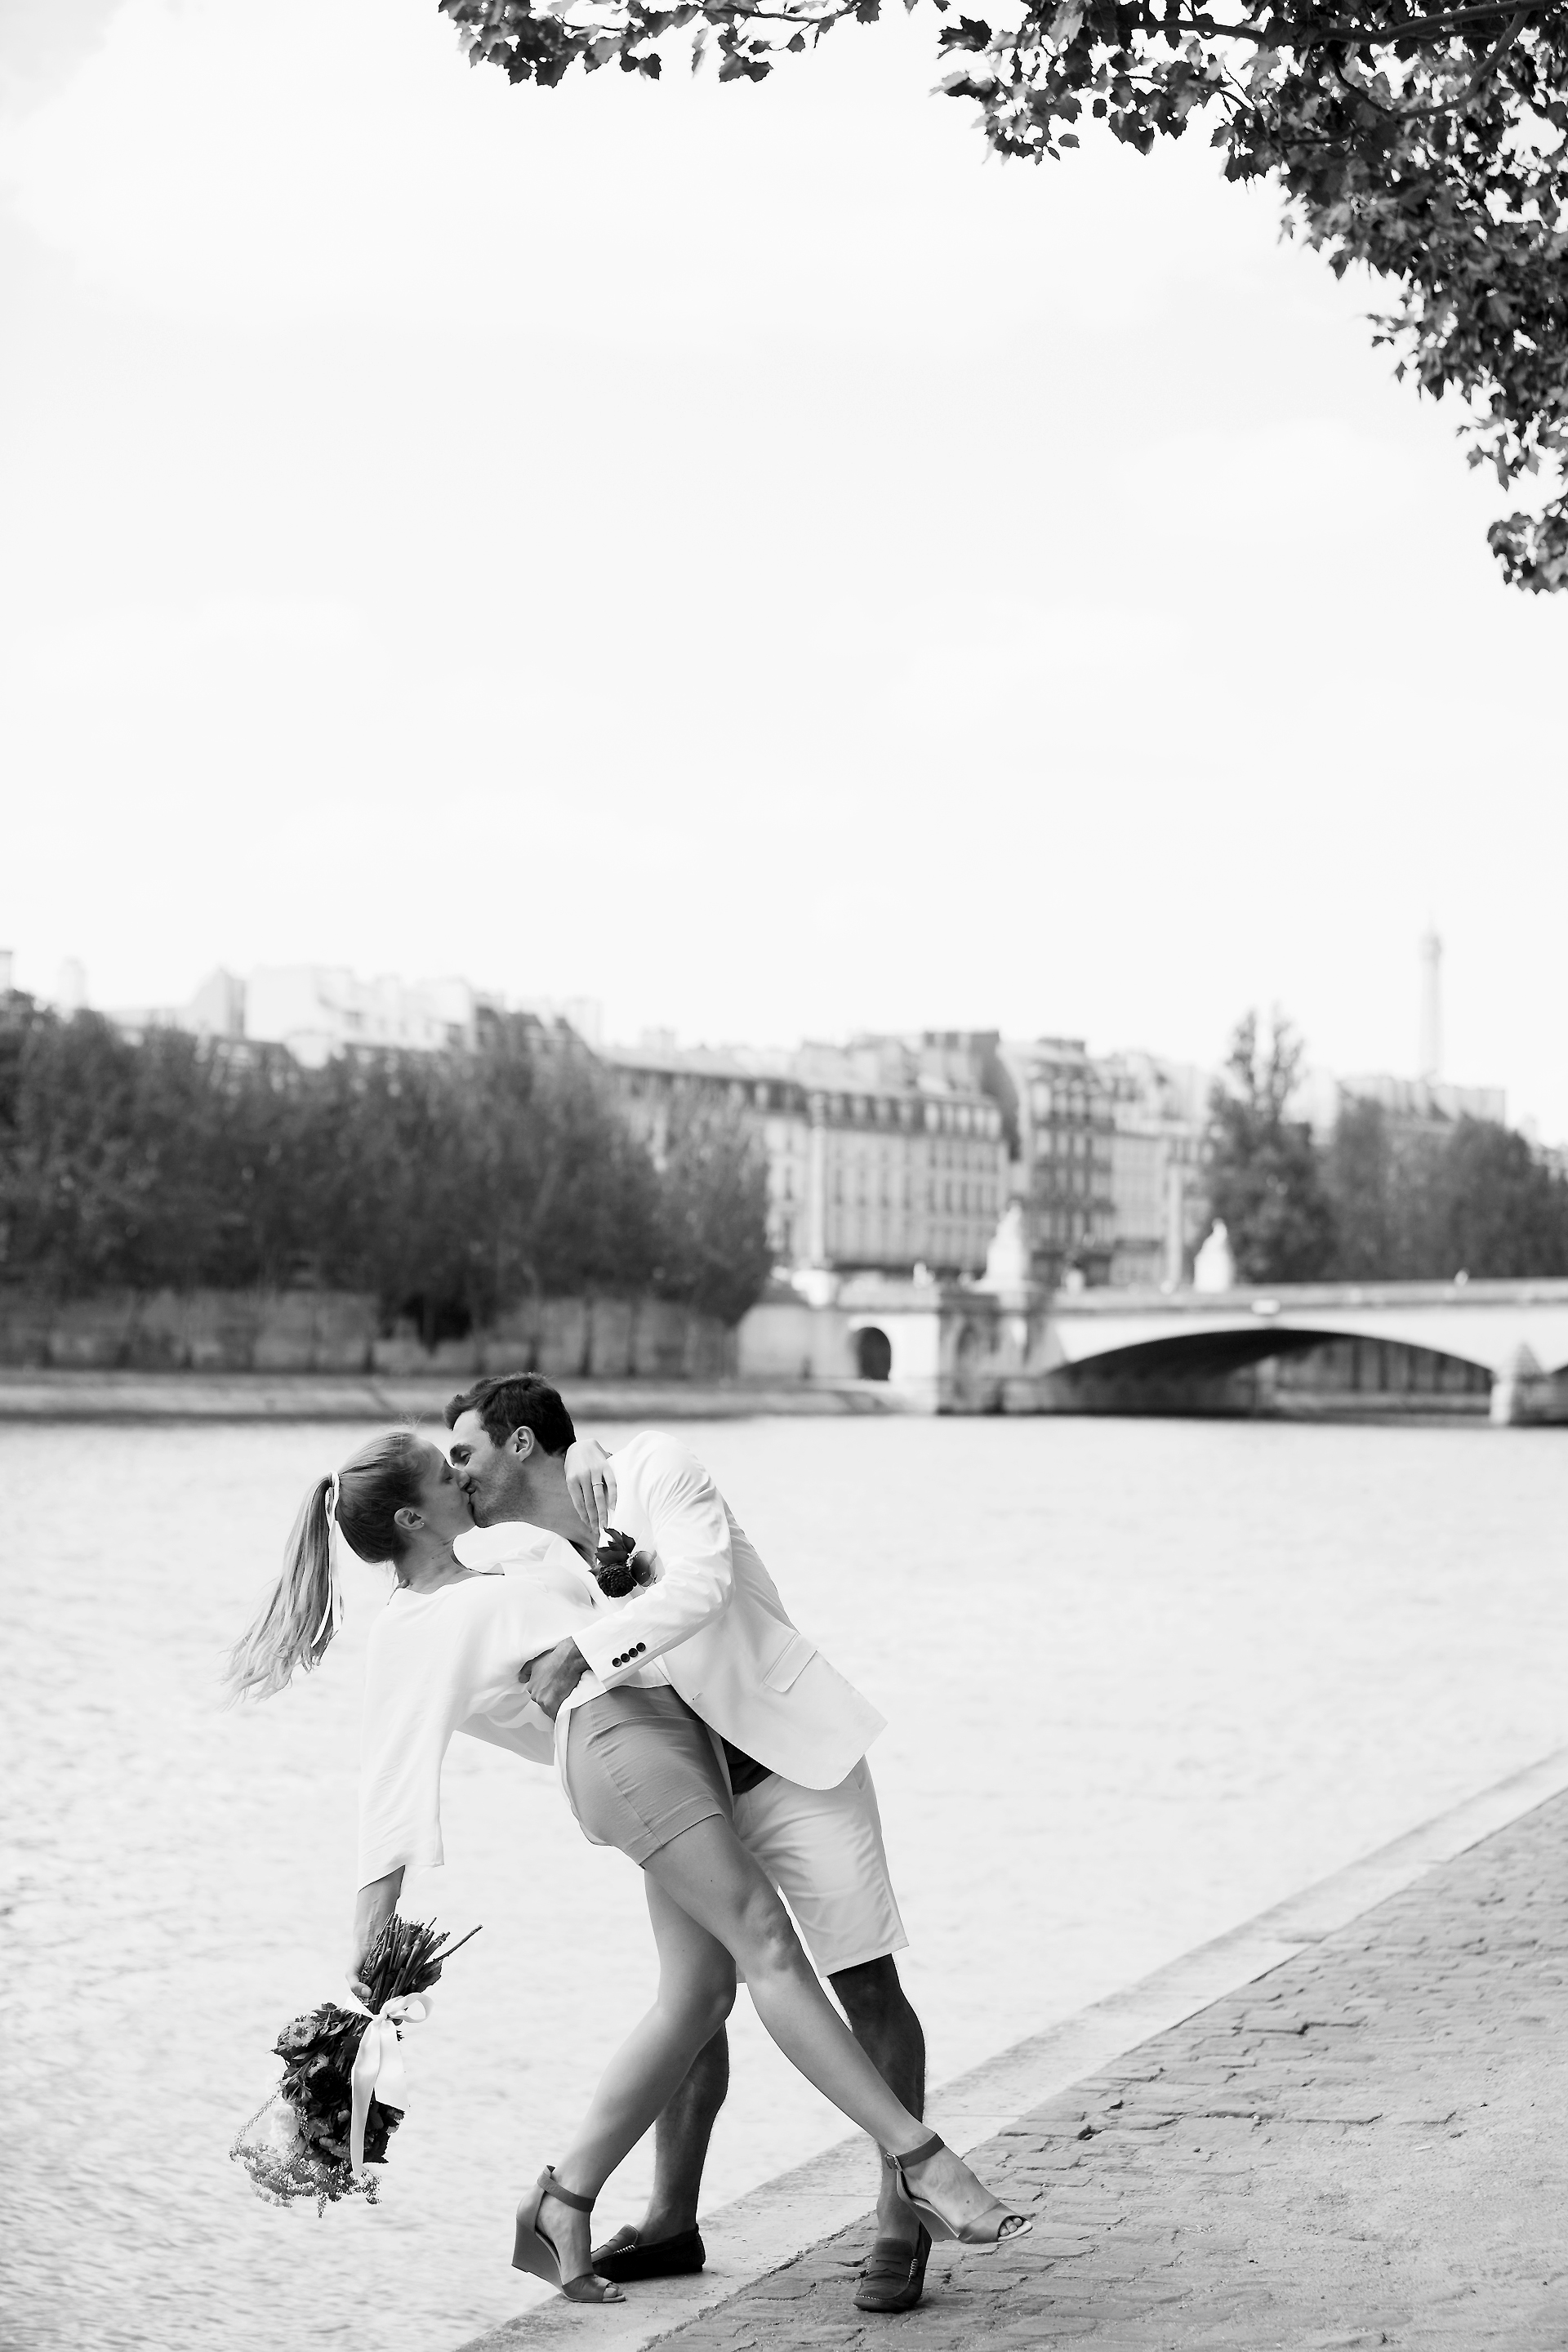 photographe-mariage-oise-paris-chantilly-senlis-keith-flament0247